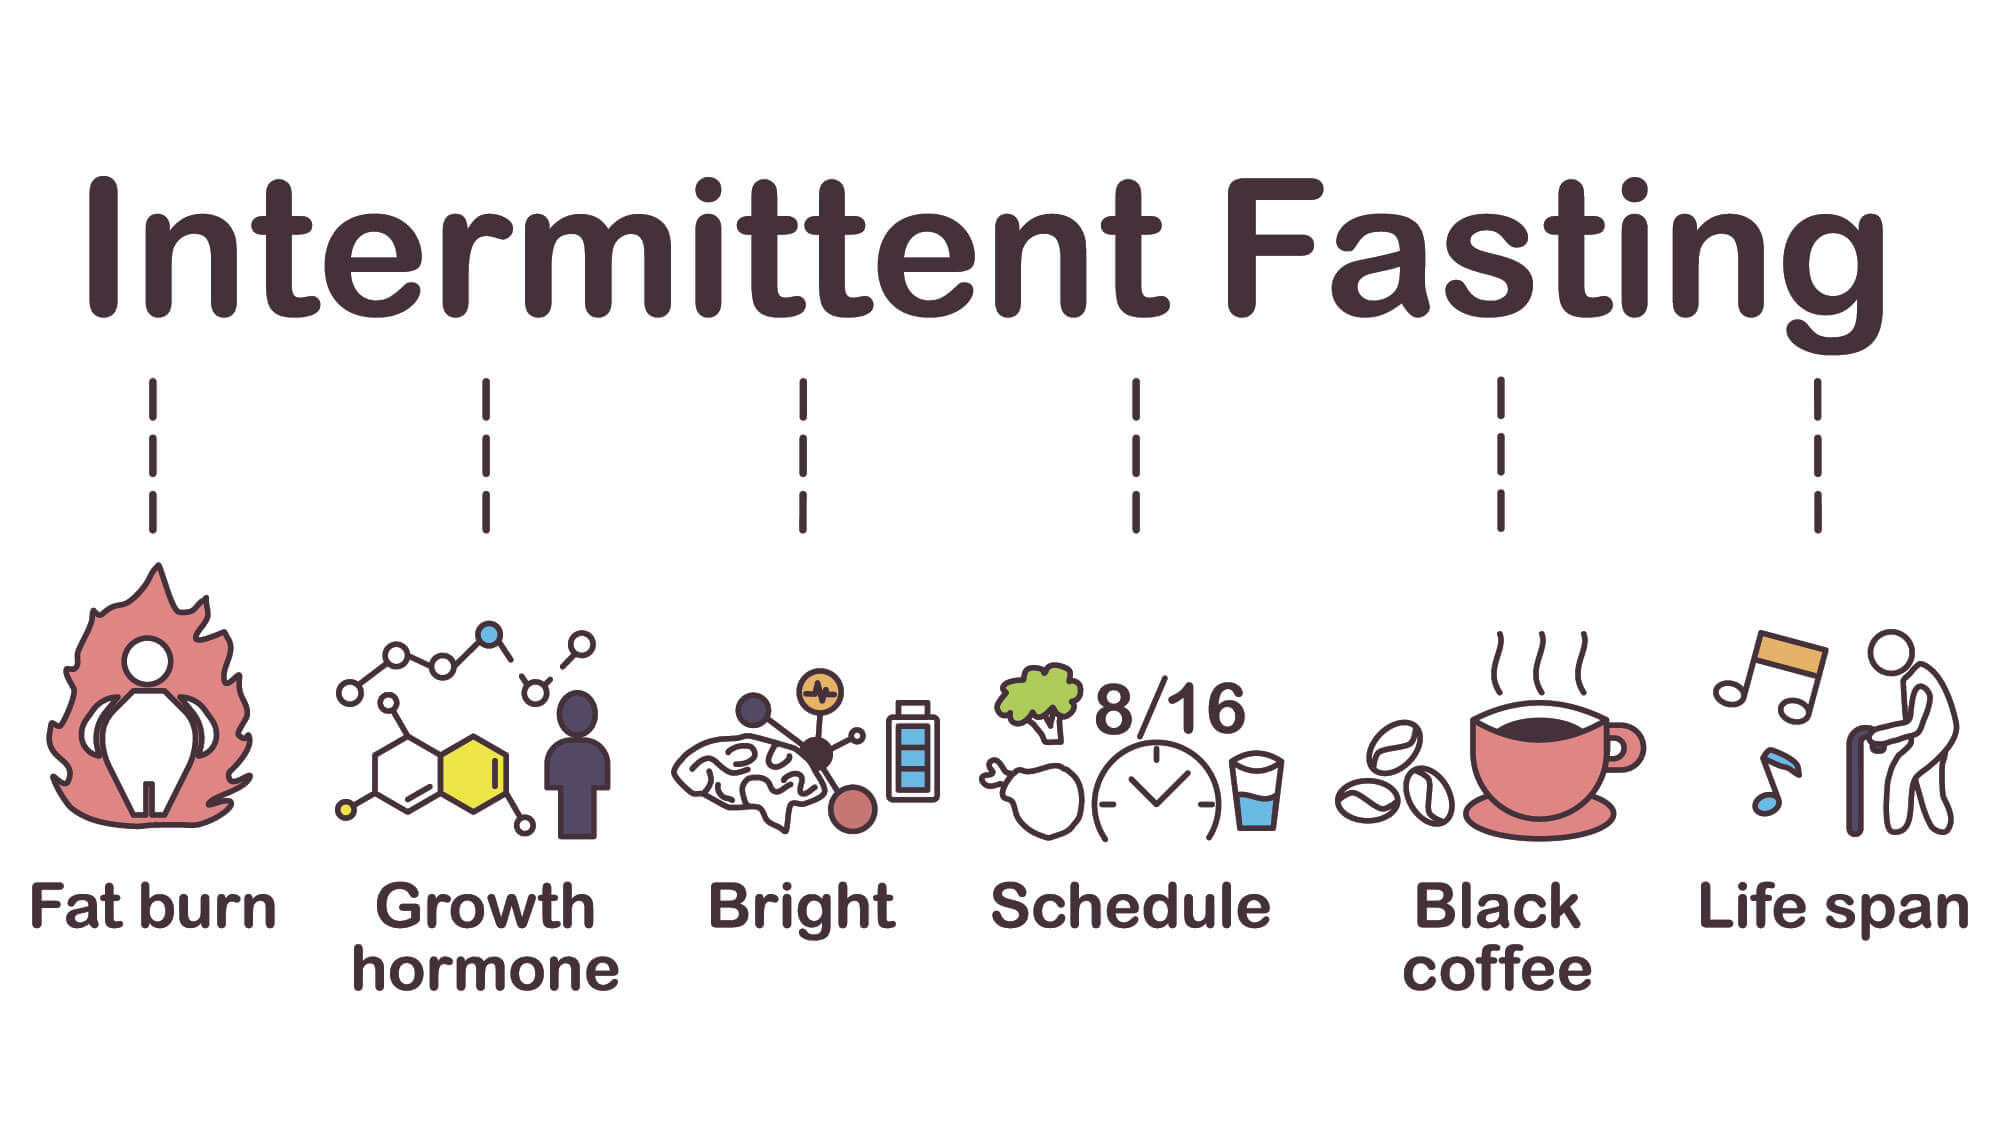 Benefits of Intermitten Fasting